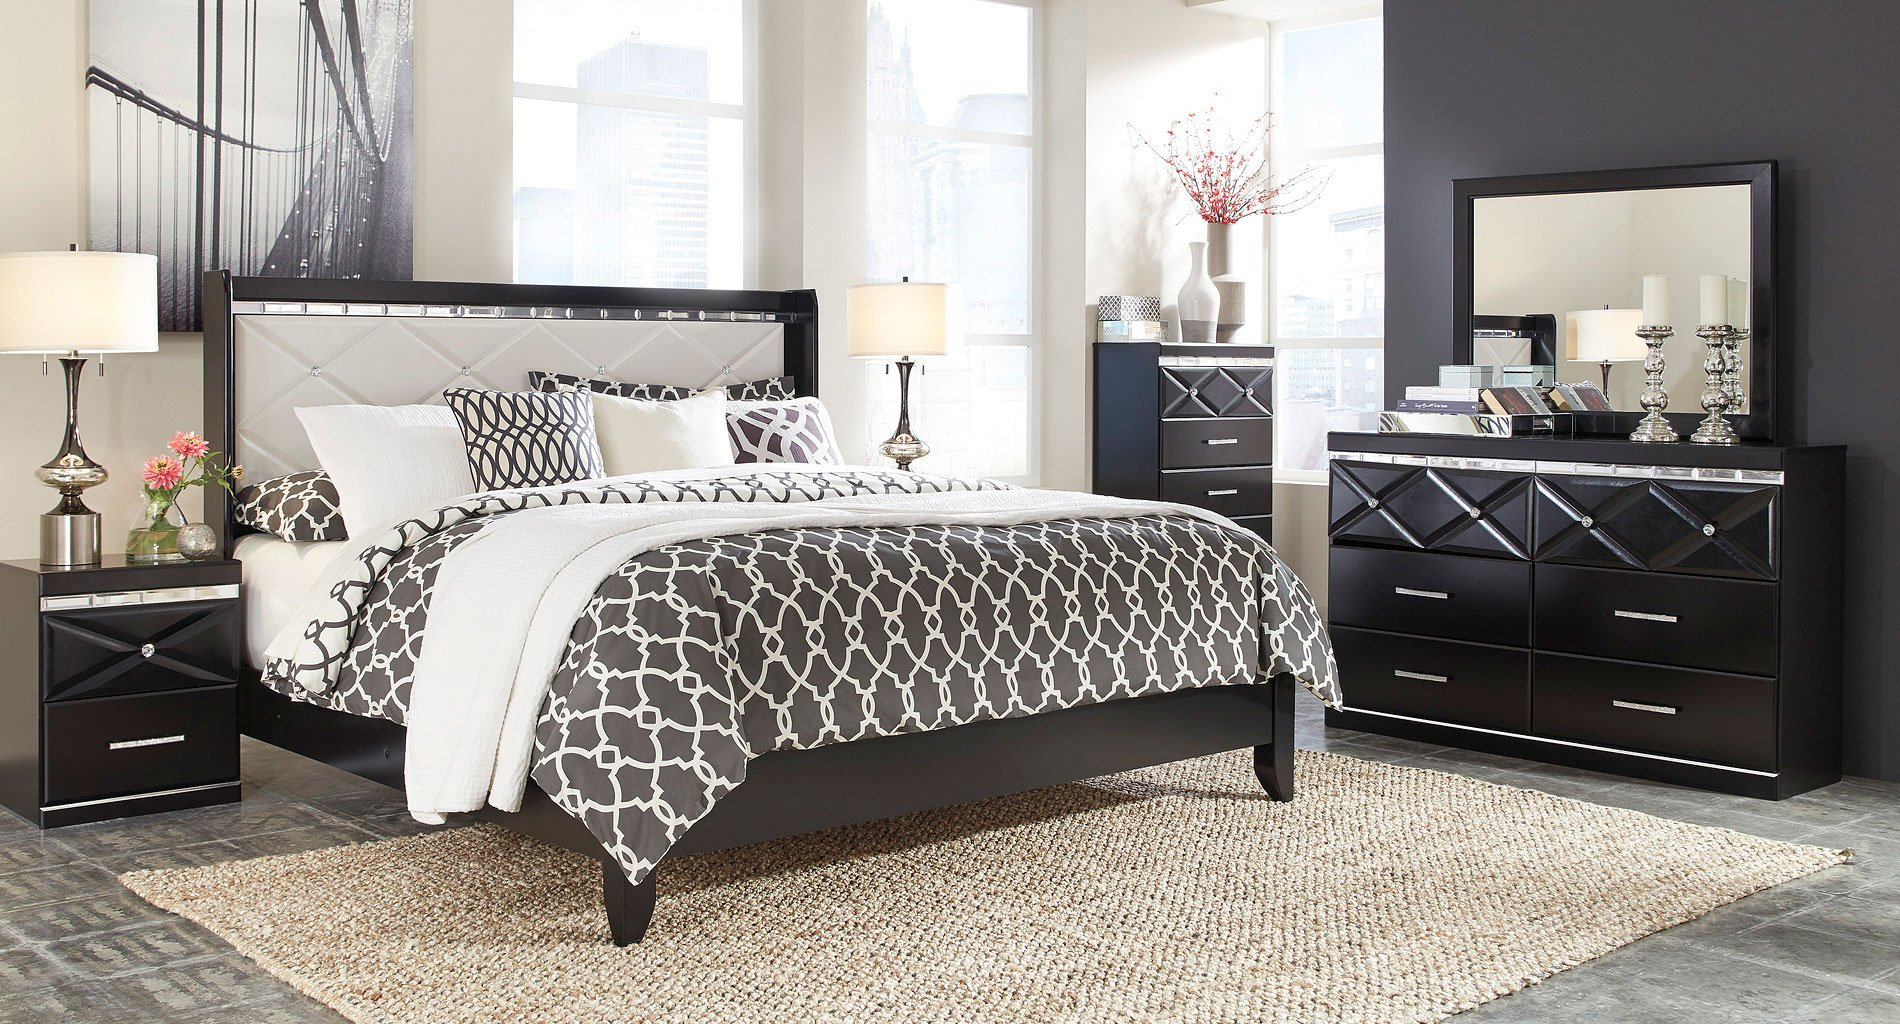 Fancee Panel Bedroom Set By Signature Design By Ashley